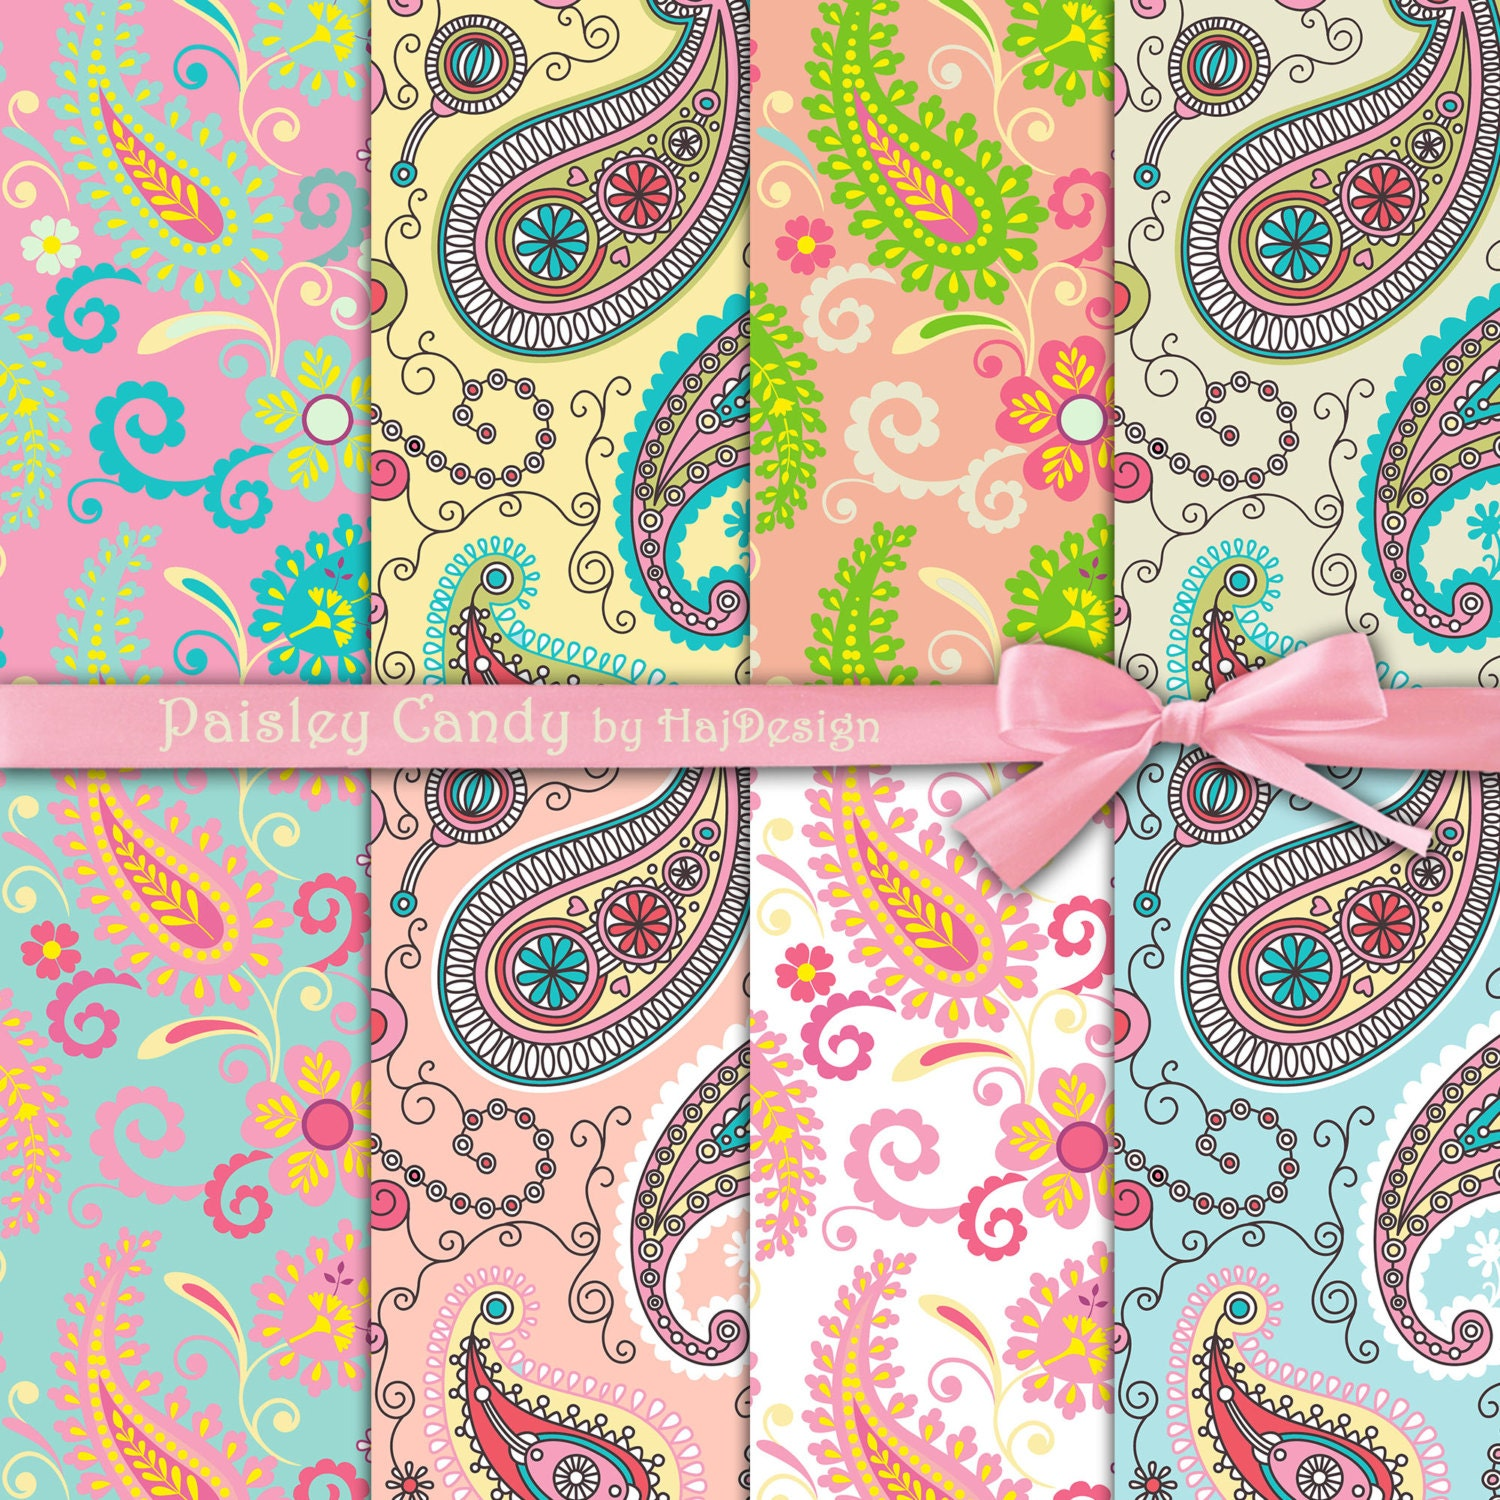 Scrapbook paper designs to print - This Is A Digital File